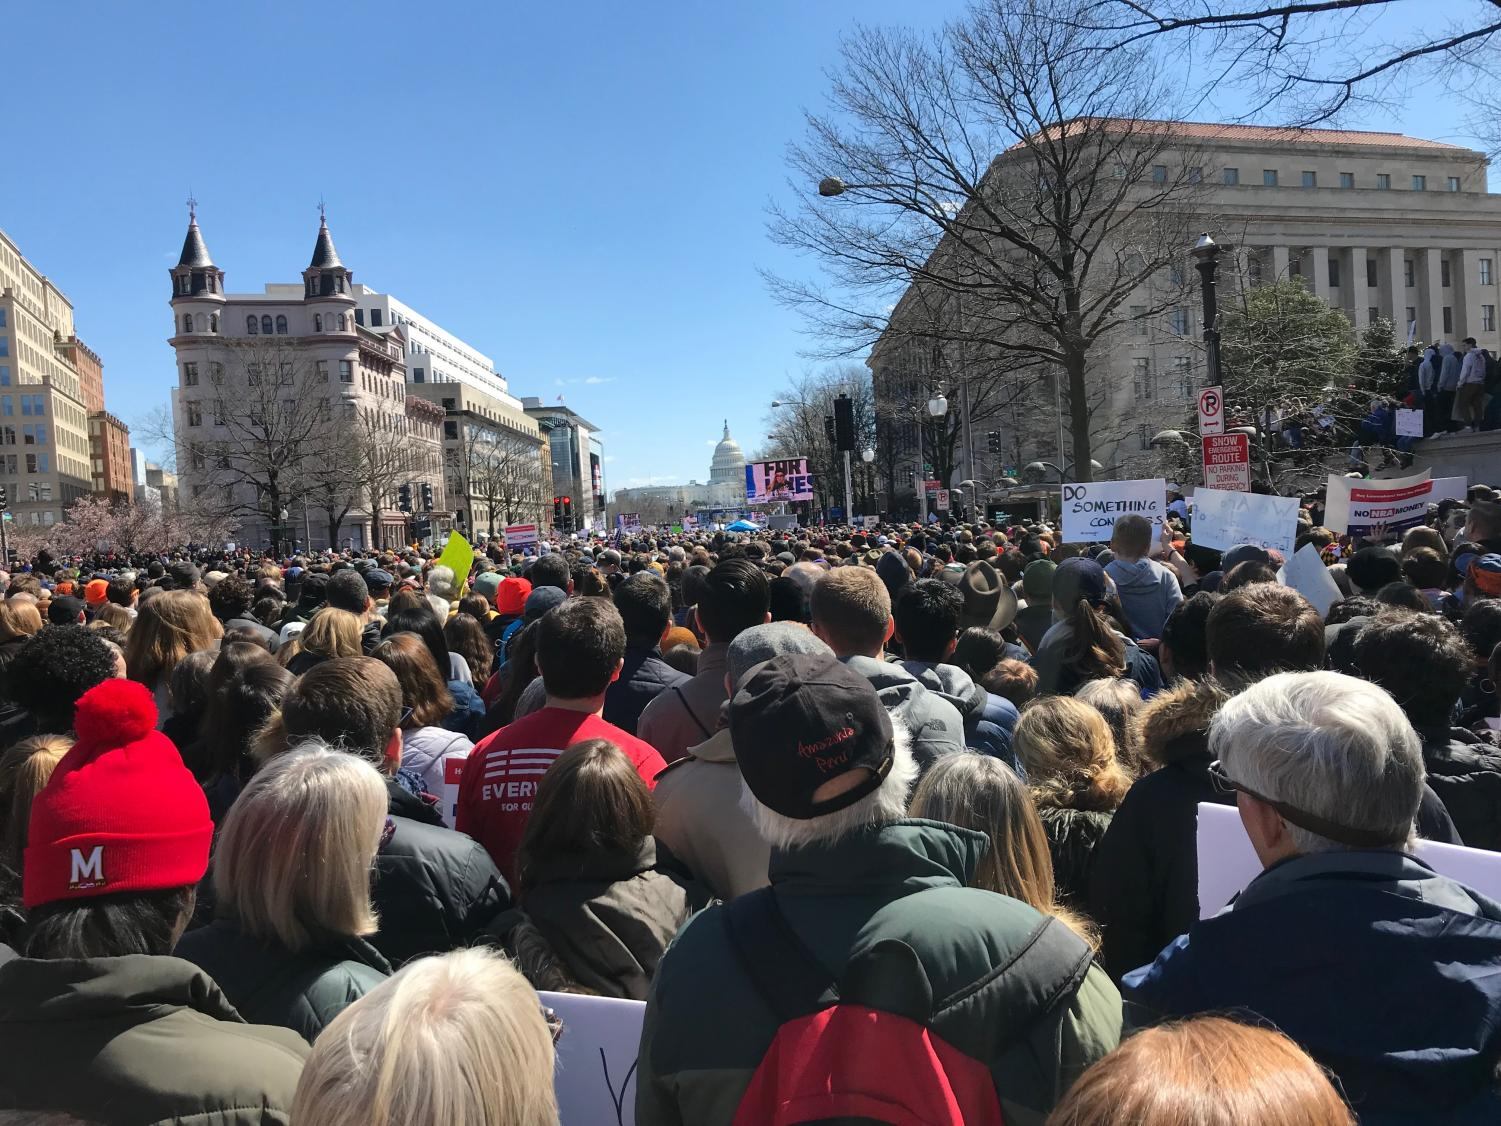 Mason student Tessa Boneau took this photo when she attended the March for Our Lives last March. The march was held on a Saturday in DC, and many Mason students participated.